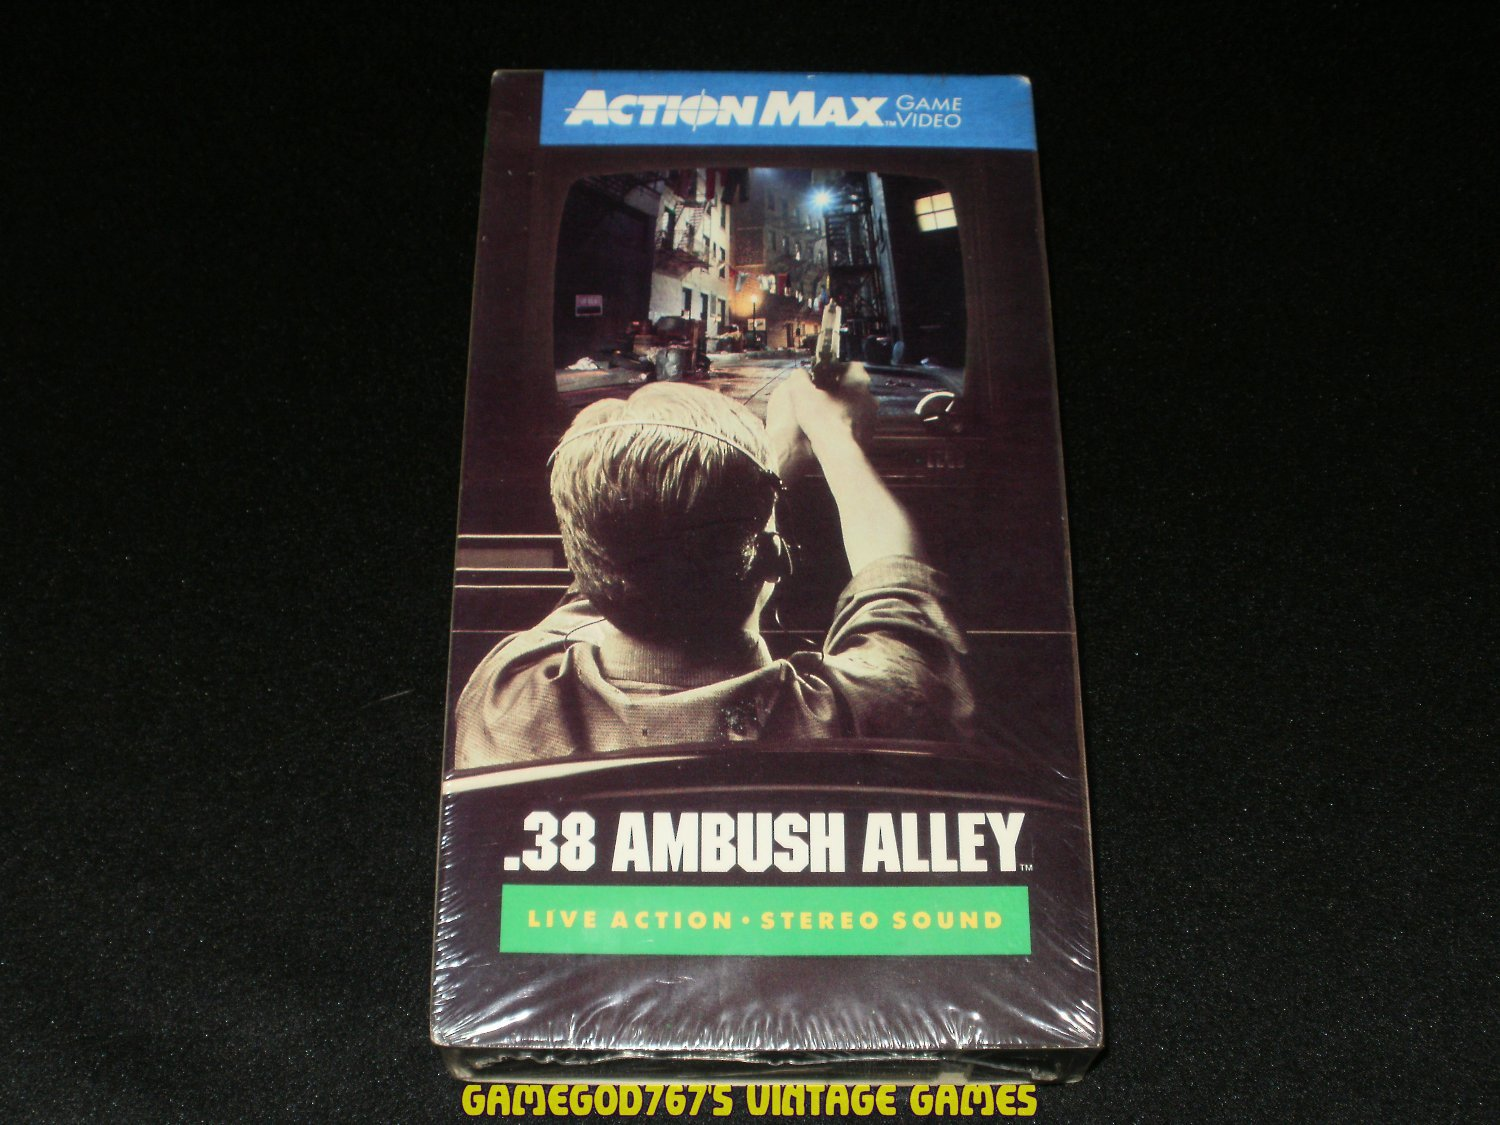 38 Ambush Alley - Action Max - Brand New Factory Sealed